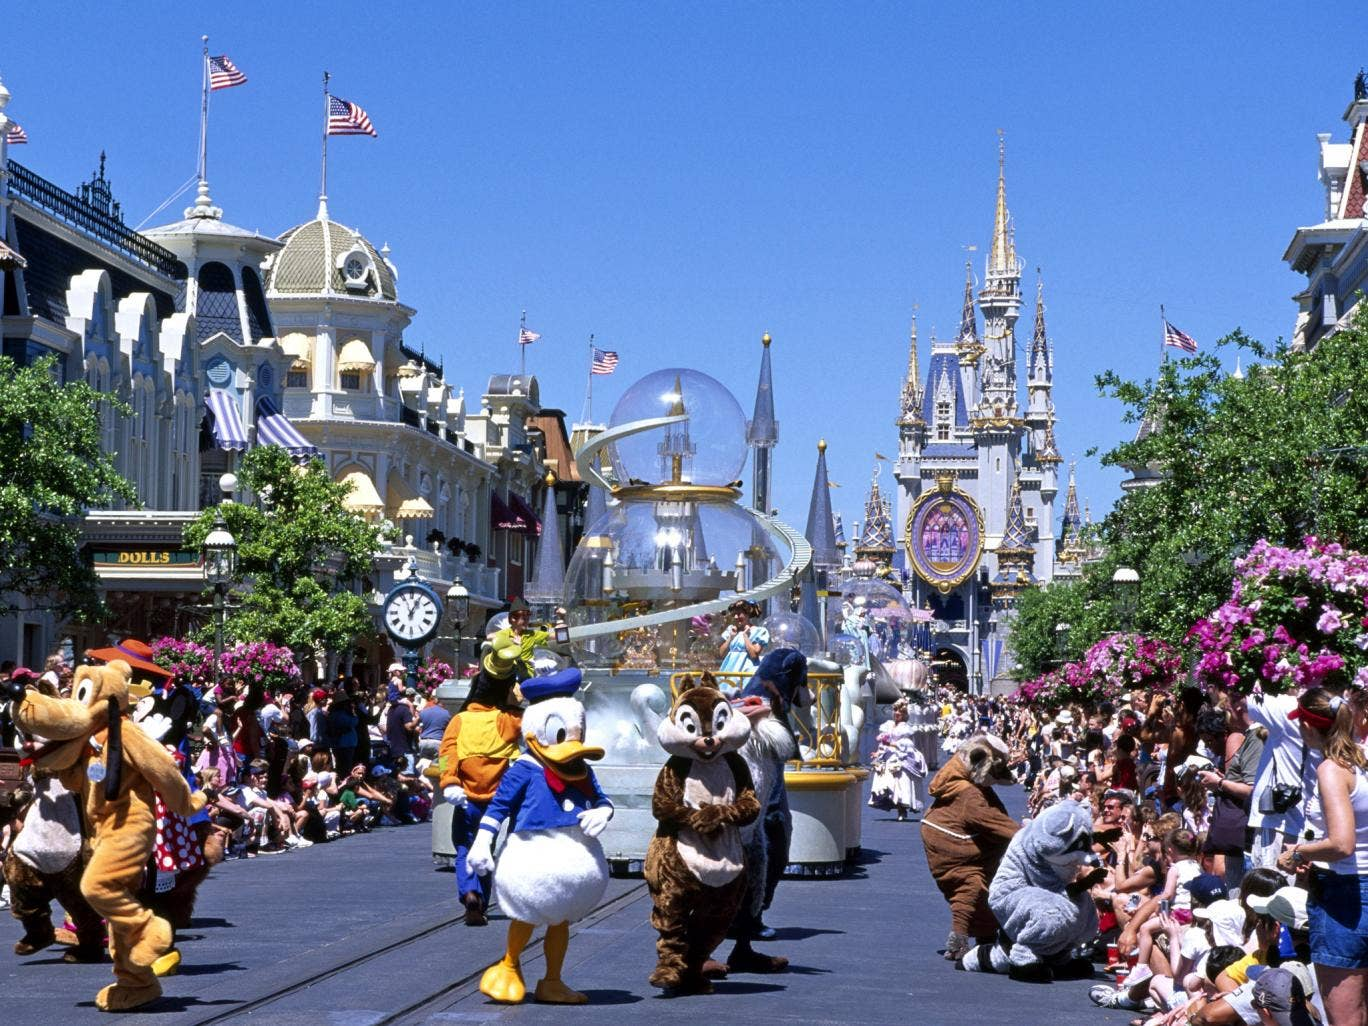 Disney used to allow disabled visitors quick access to rides and other attractions